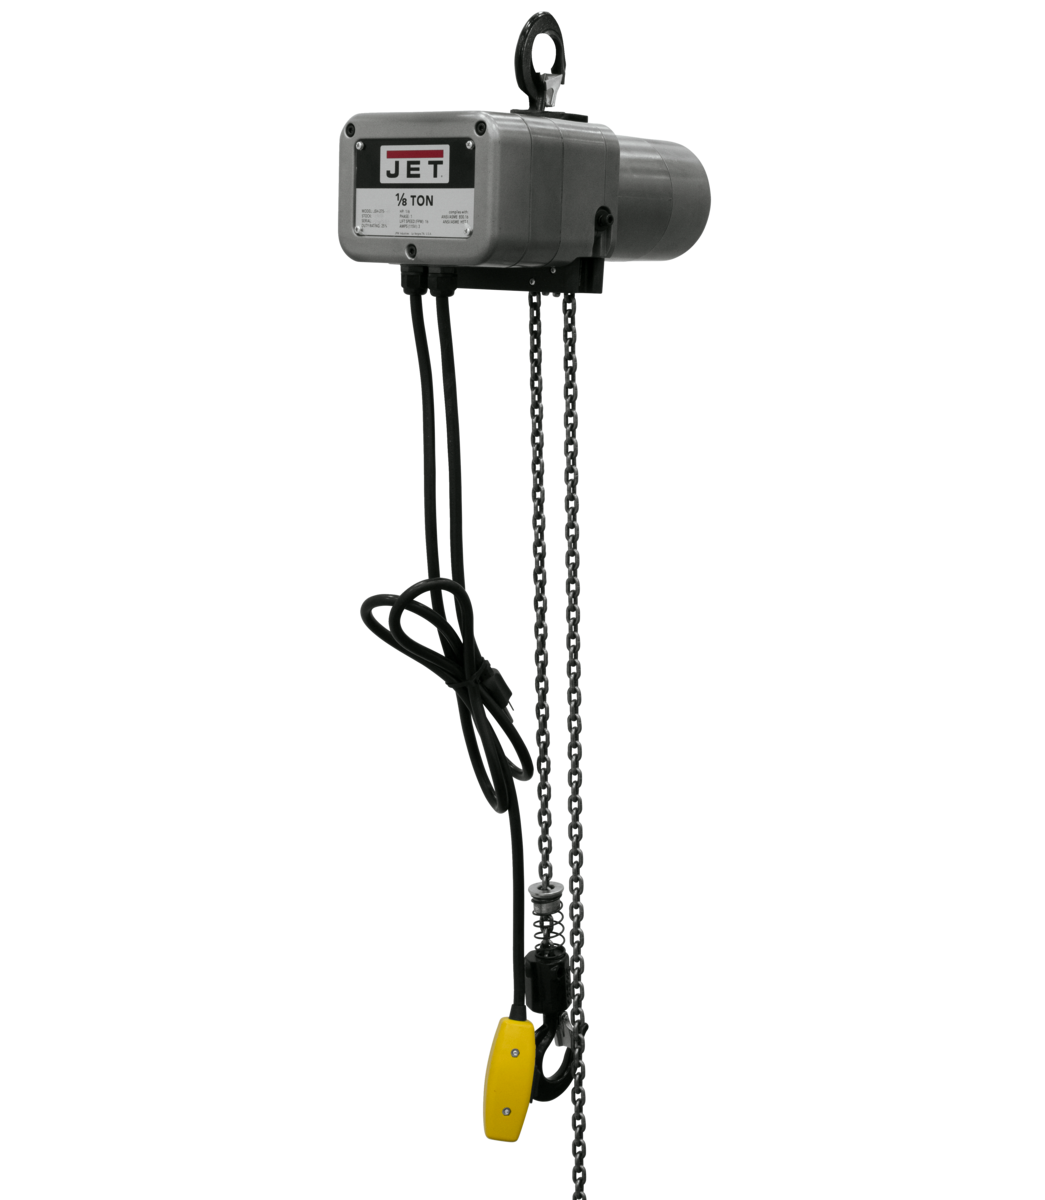 JSH-275-20 1/8-Ton Electric Chain Hoist 1-Phase 20' Lift